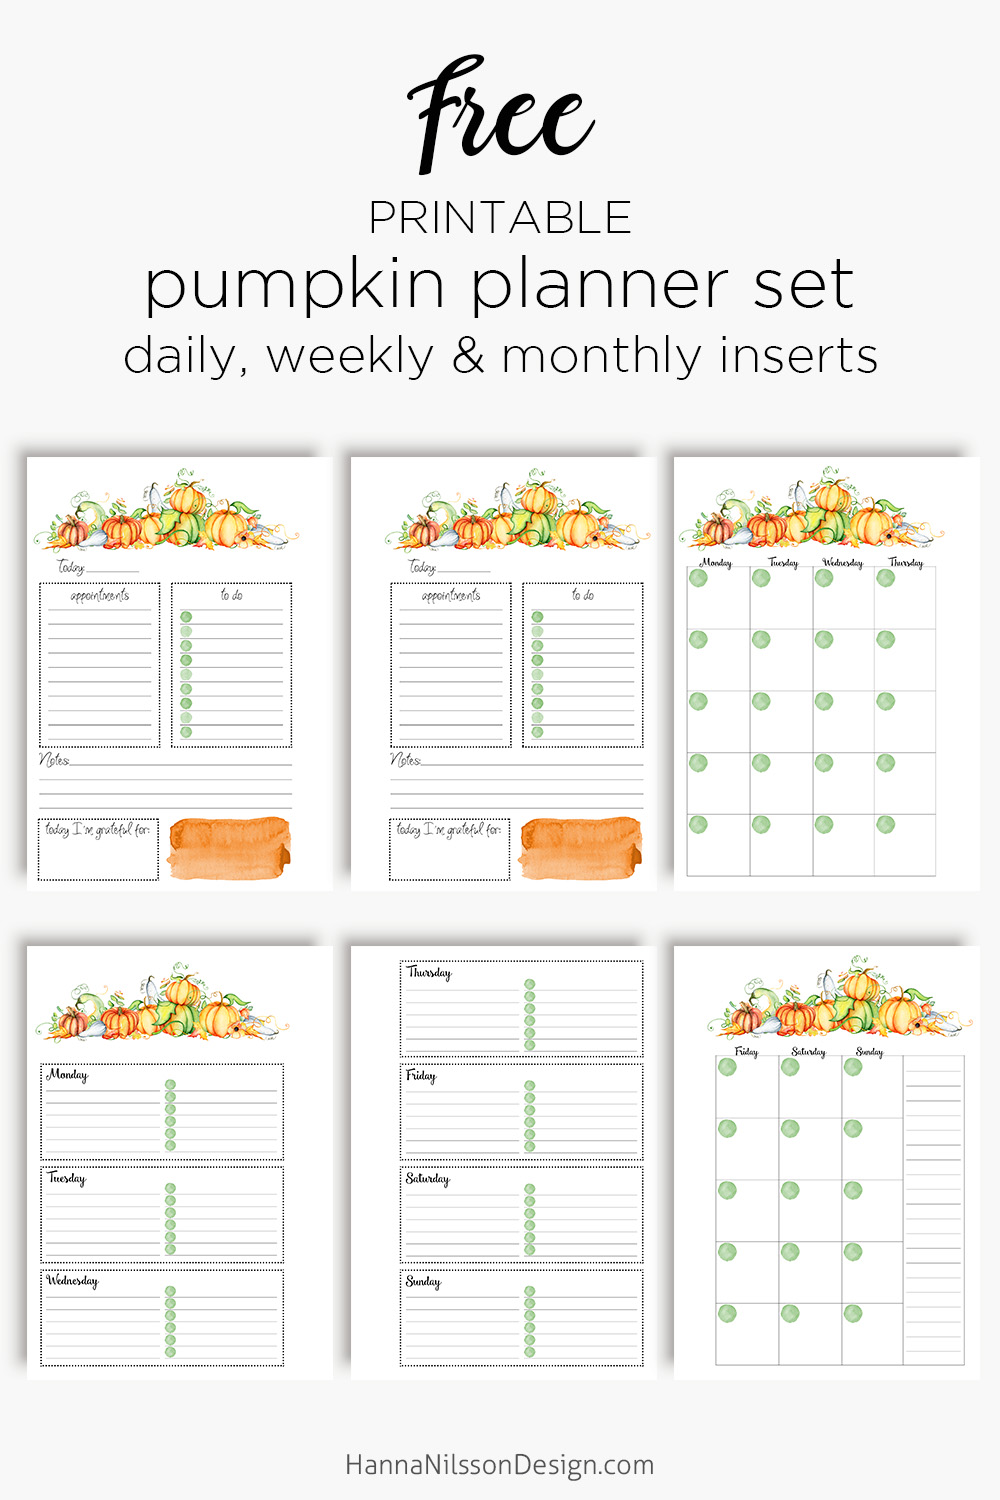 graphic about Printable Planner Inserts known as Absolutely free printable slide planner inserts with charming pumpkins